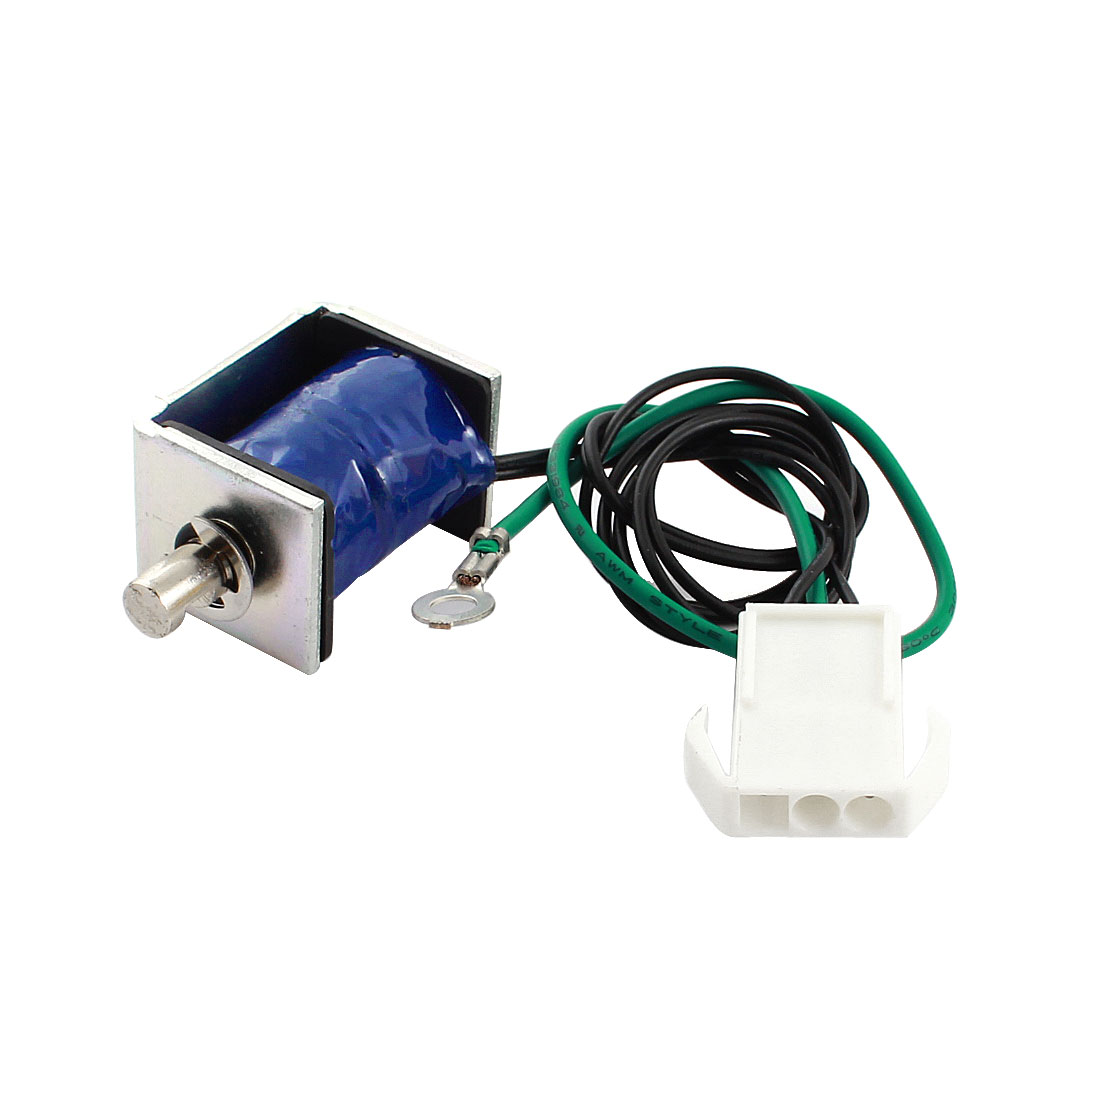 24V 1.09A 26.18W 6mm 150g 10% Open Frame Linear Motion Pull Type DC Solenoid Electromagnet Actuator w Male Tamiya Plug